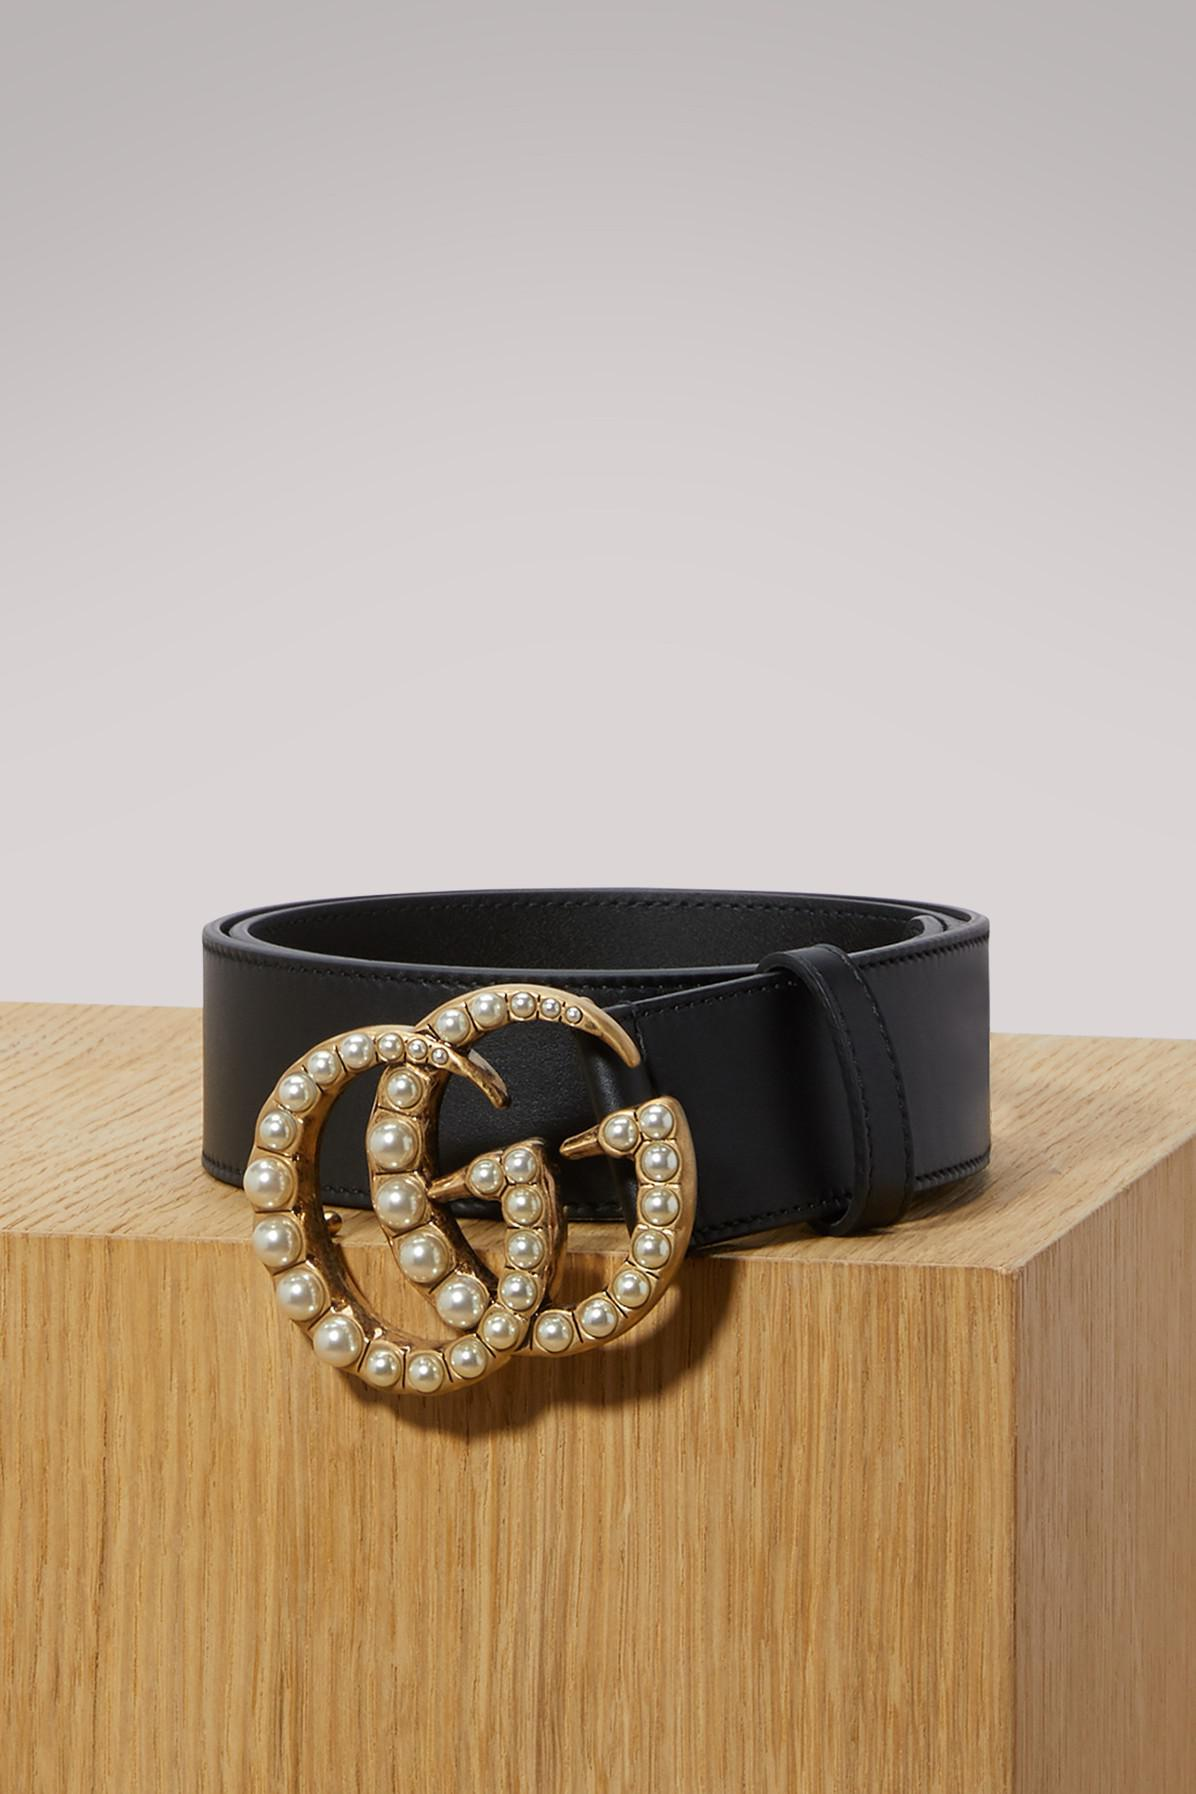 95586d533f4 Lyst - Gucci Leather Belt With Pearl Double G in Black